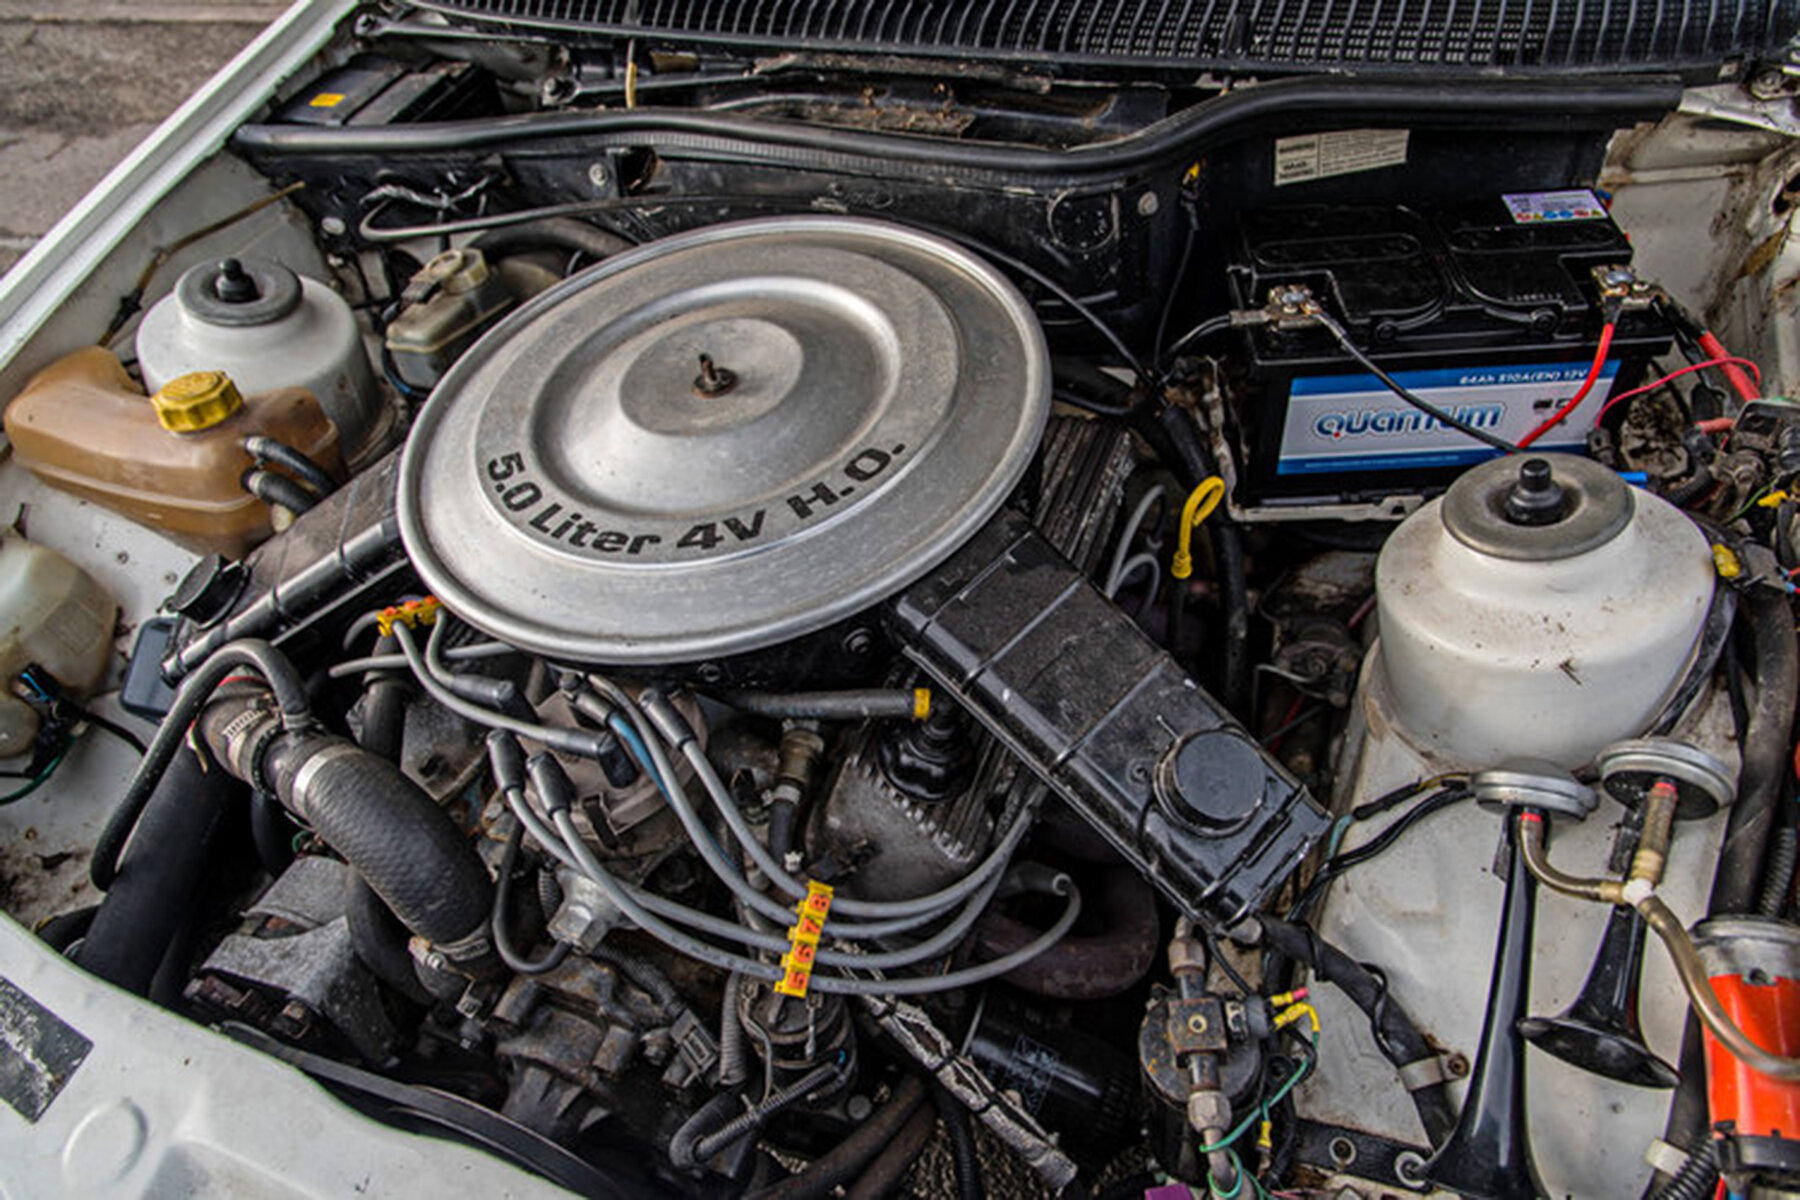 Ford Sierra XR8 is powered by a 5.0-litre Mustang V8.